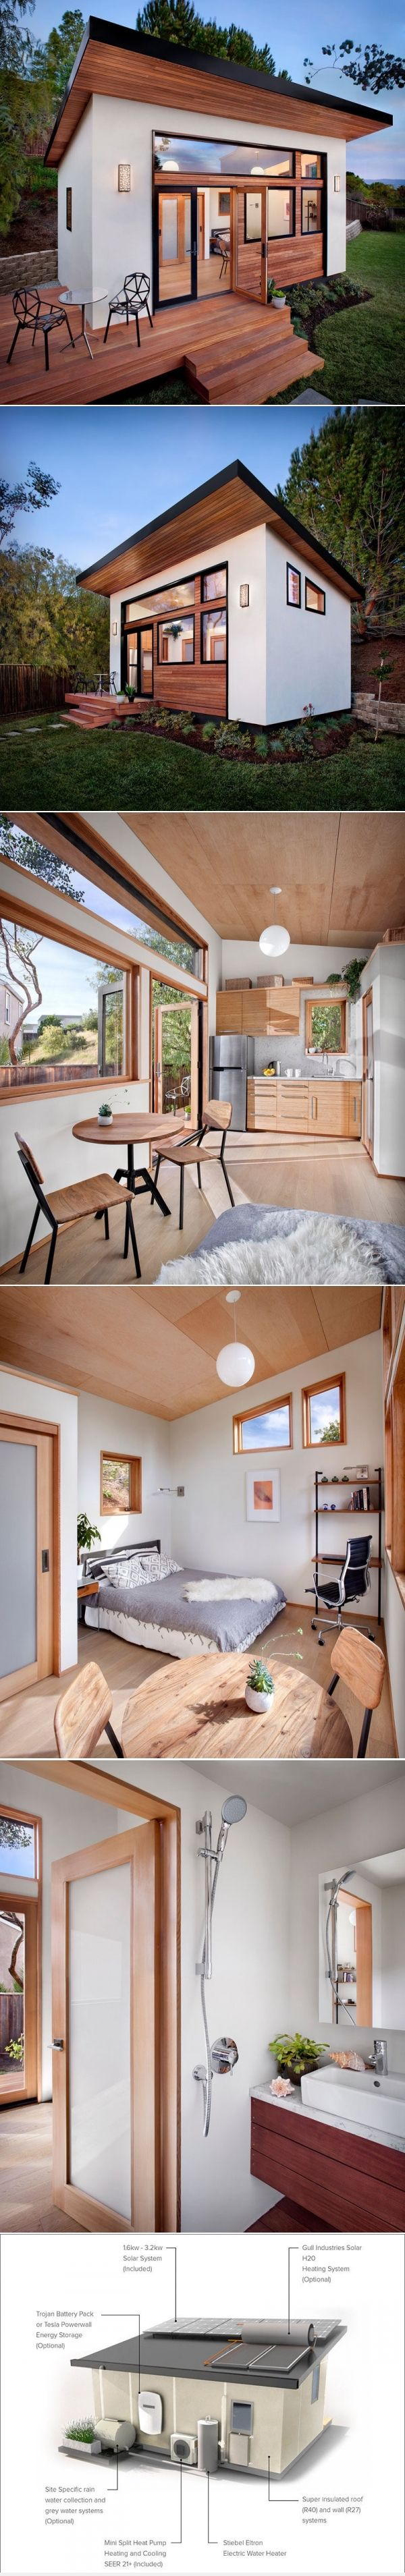 This Small Backyard Guest House Is Big On Ideas For Compact Living Backyard Guest Houses Tiny House Design Small House